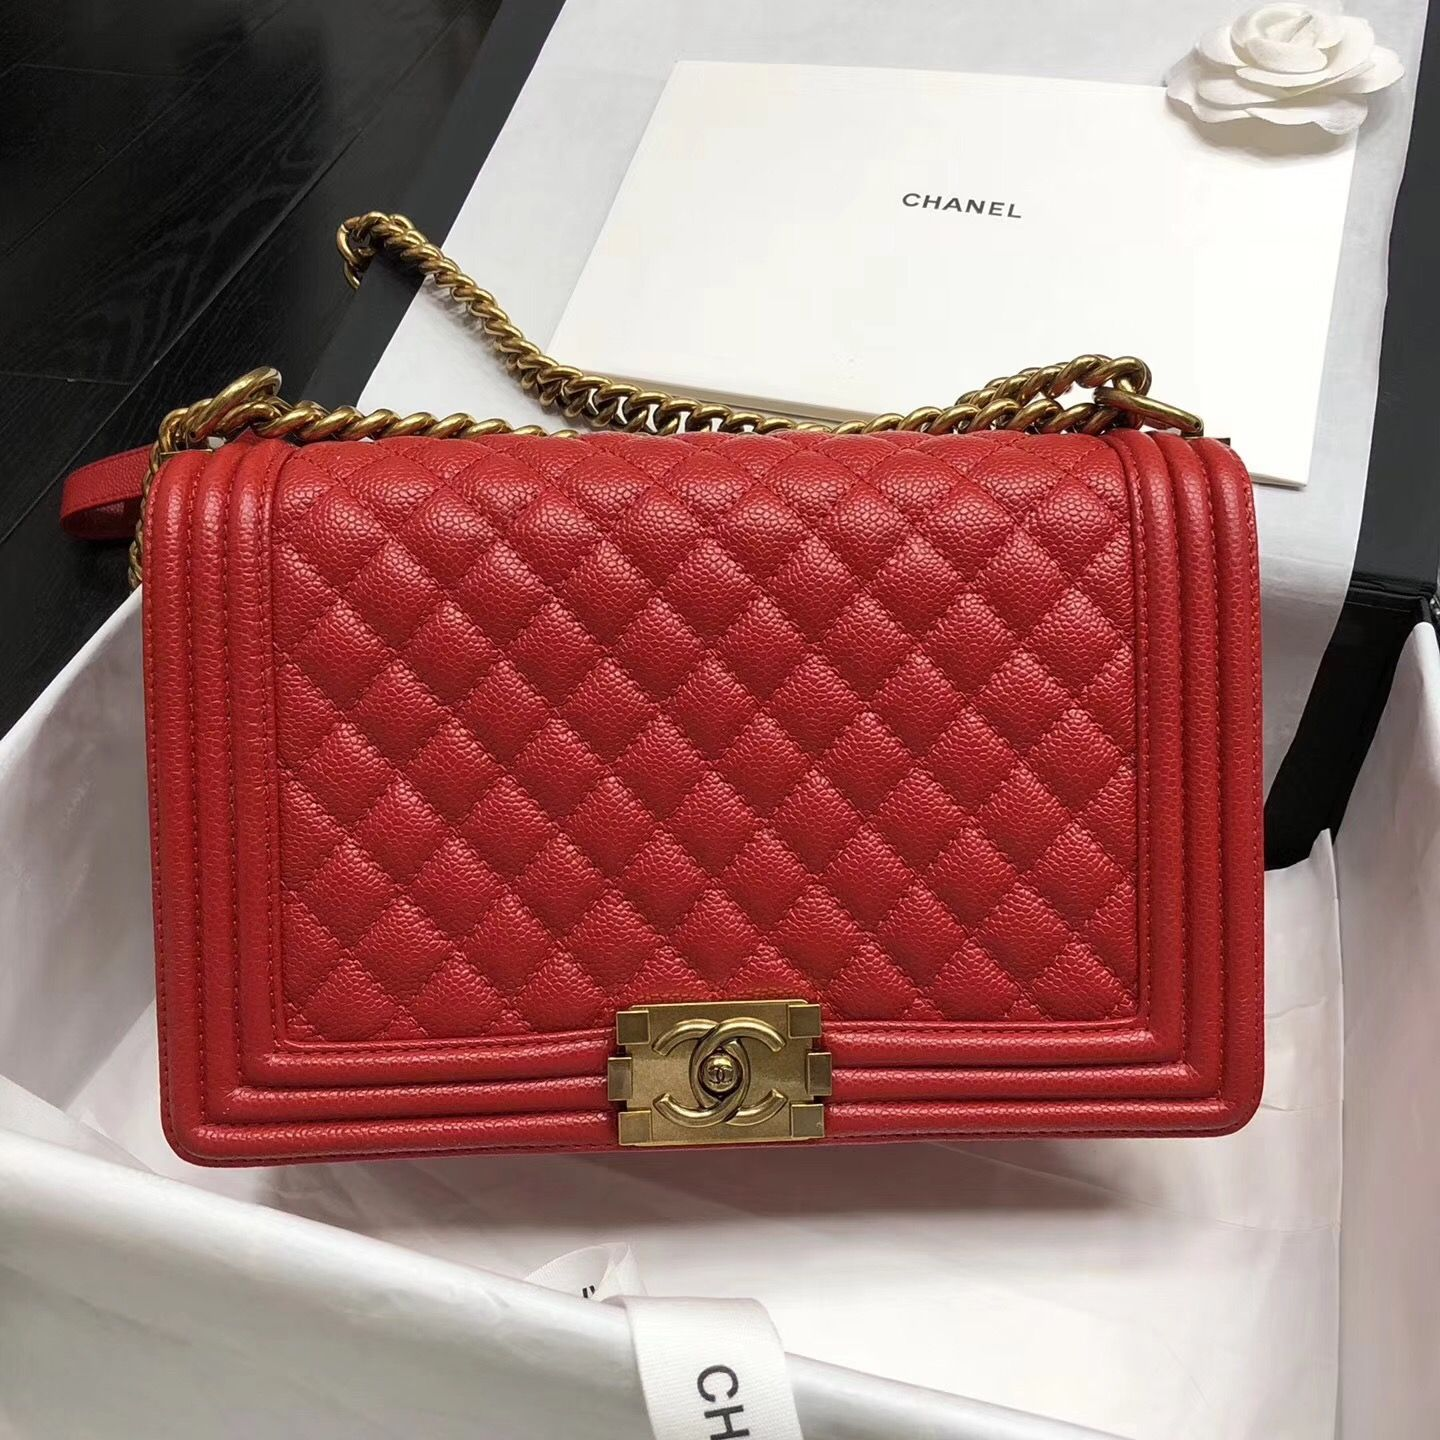 d4f252ae800952 Chanel New Medium Original Caviar Leather Le Boy Flap Bag 28cm Red ...